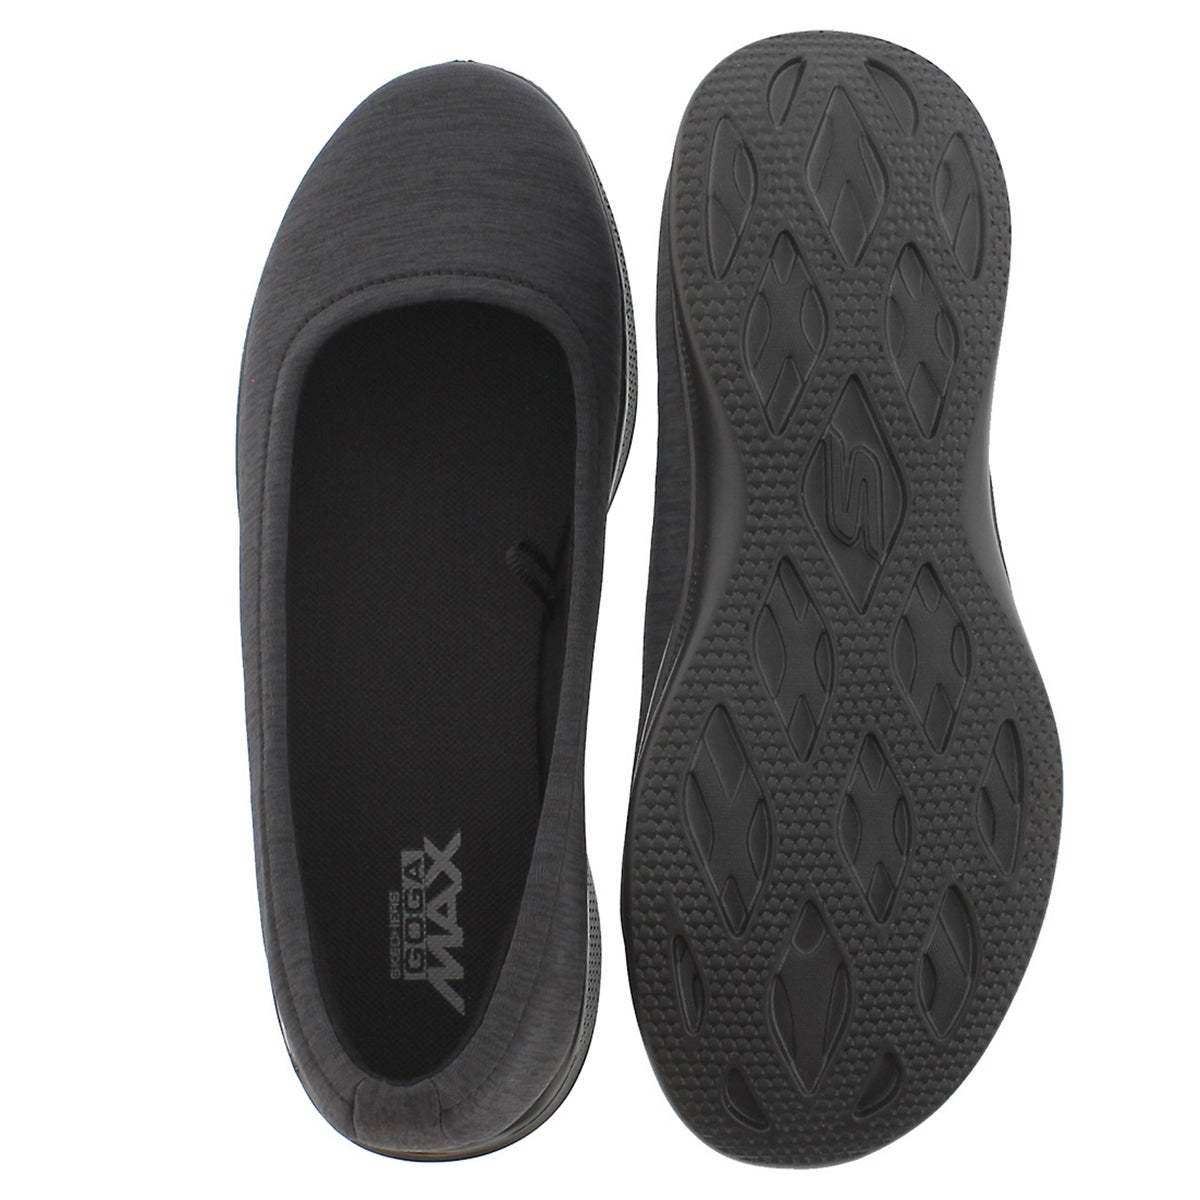 Lds GOStepLite blk space dye casual flat